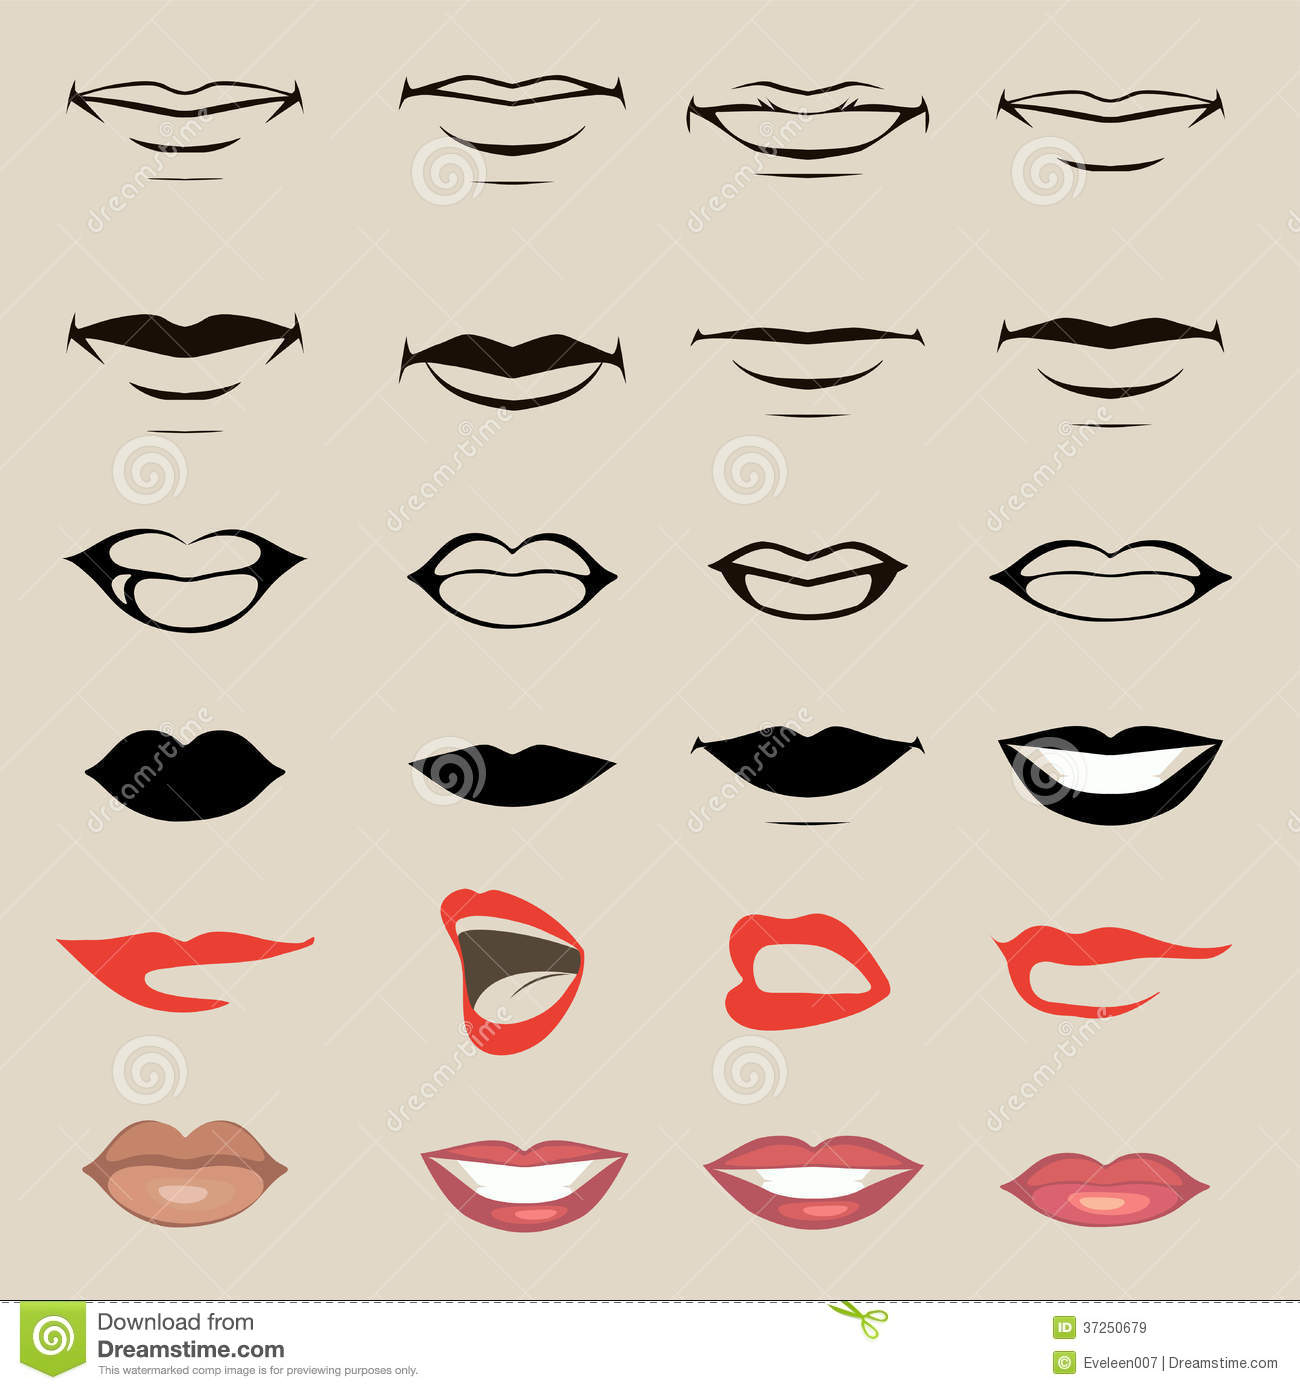 10 Lips Silhouette Vector Images - Vector Face Silhouette ...